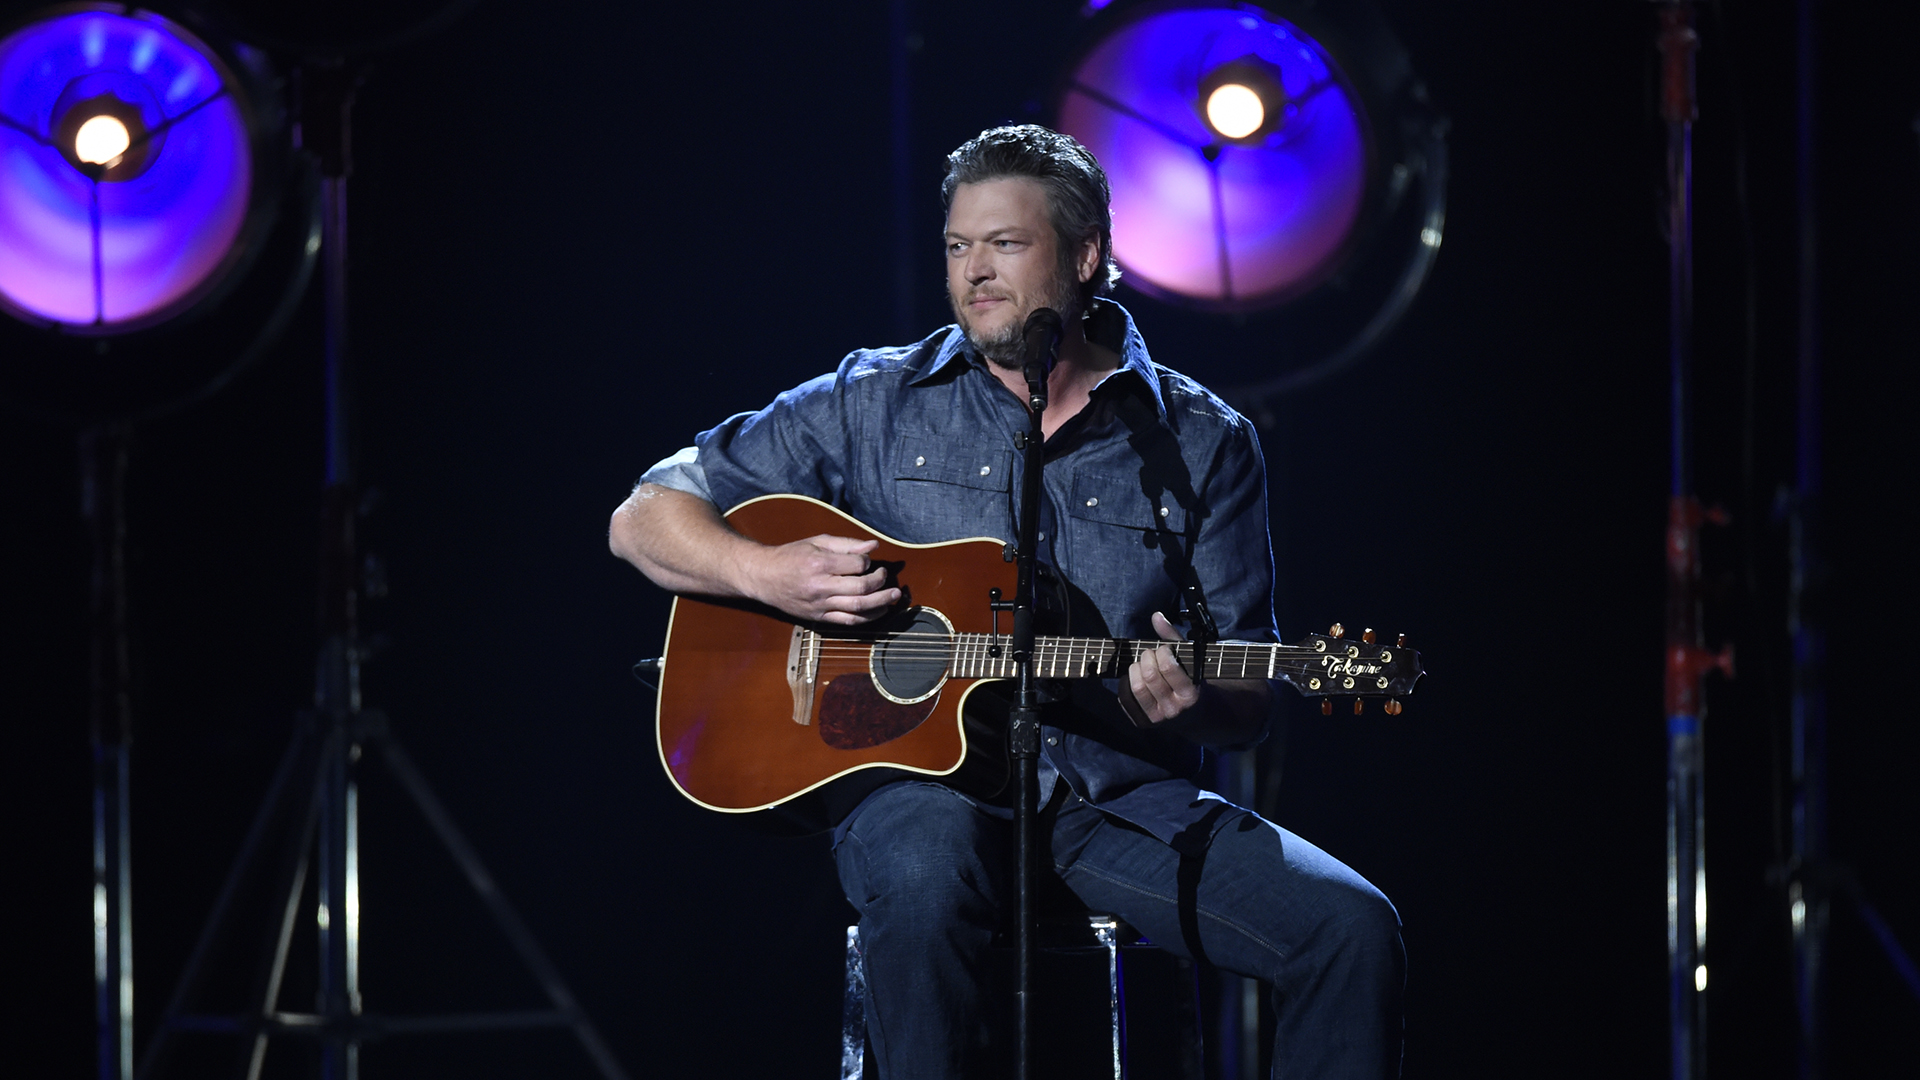 Accompanied by a violinist, Blake Shelton performs a stripped-down version of